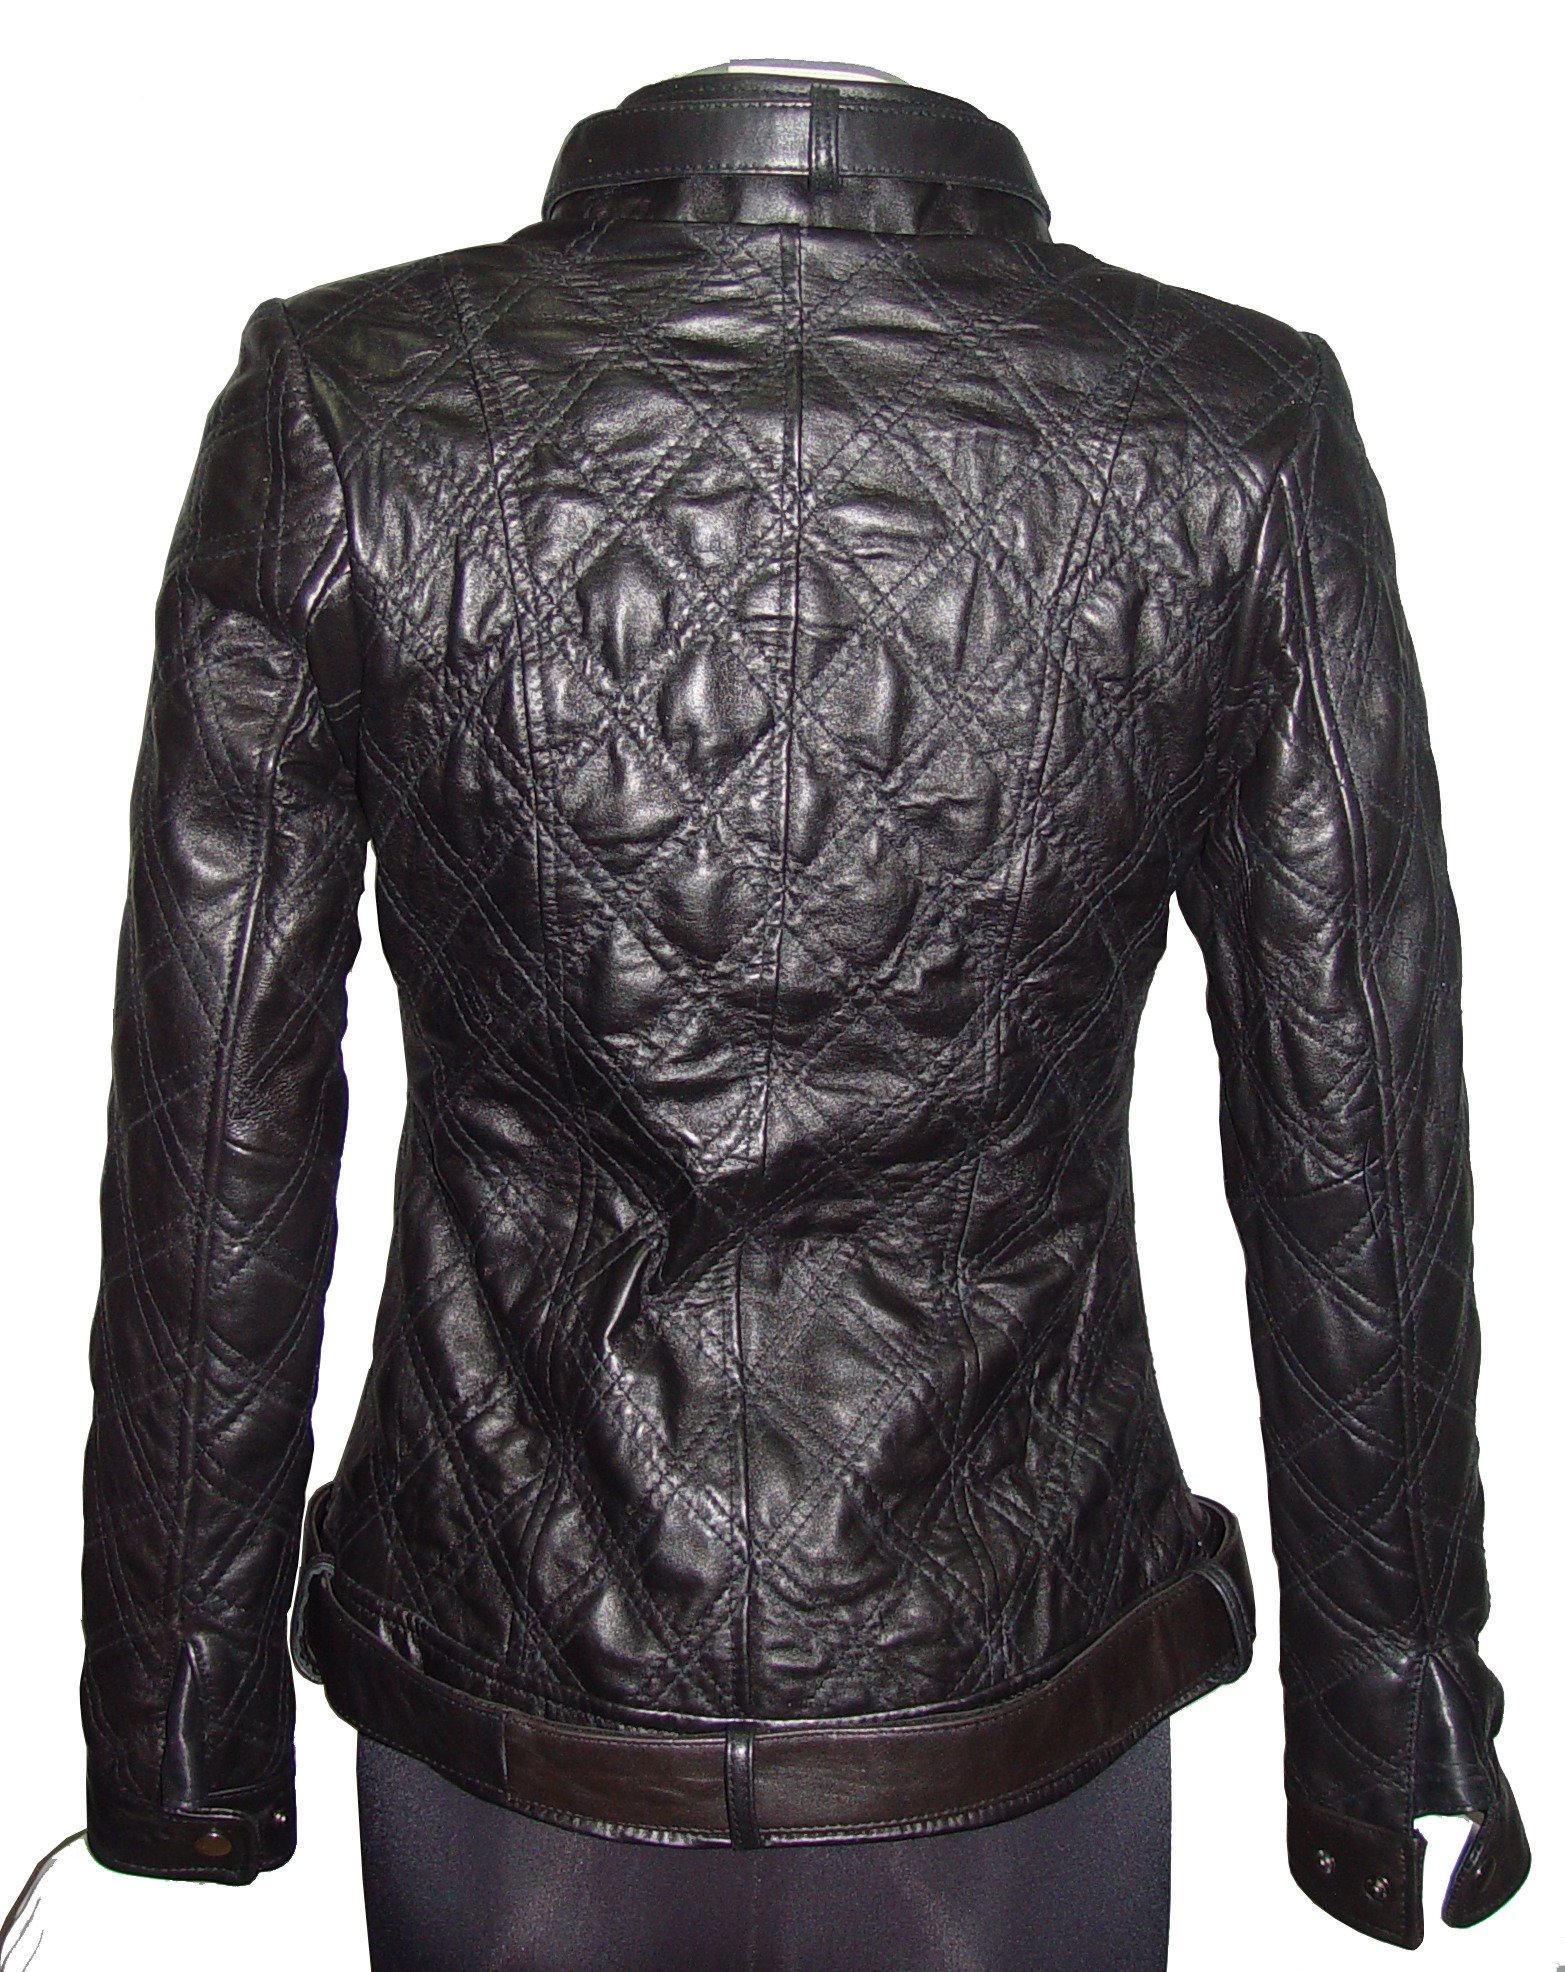 Nettailor Women PETITE & ALL SIZE Fashion 4123 Leather Motorcycle Jacket by Paccilo (Image #3)